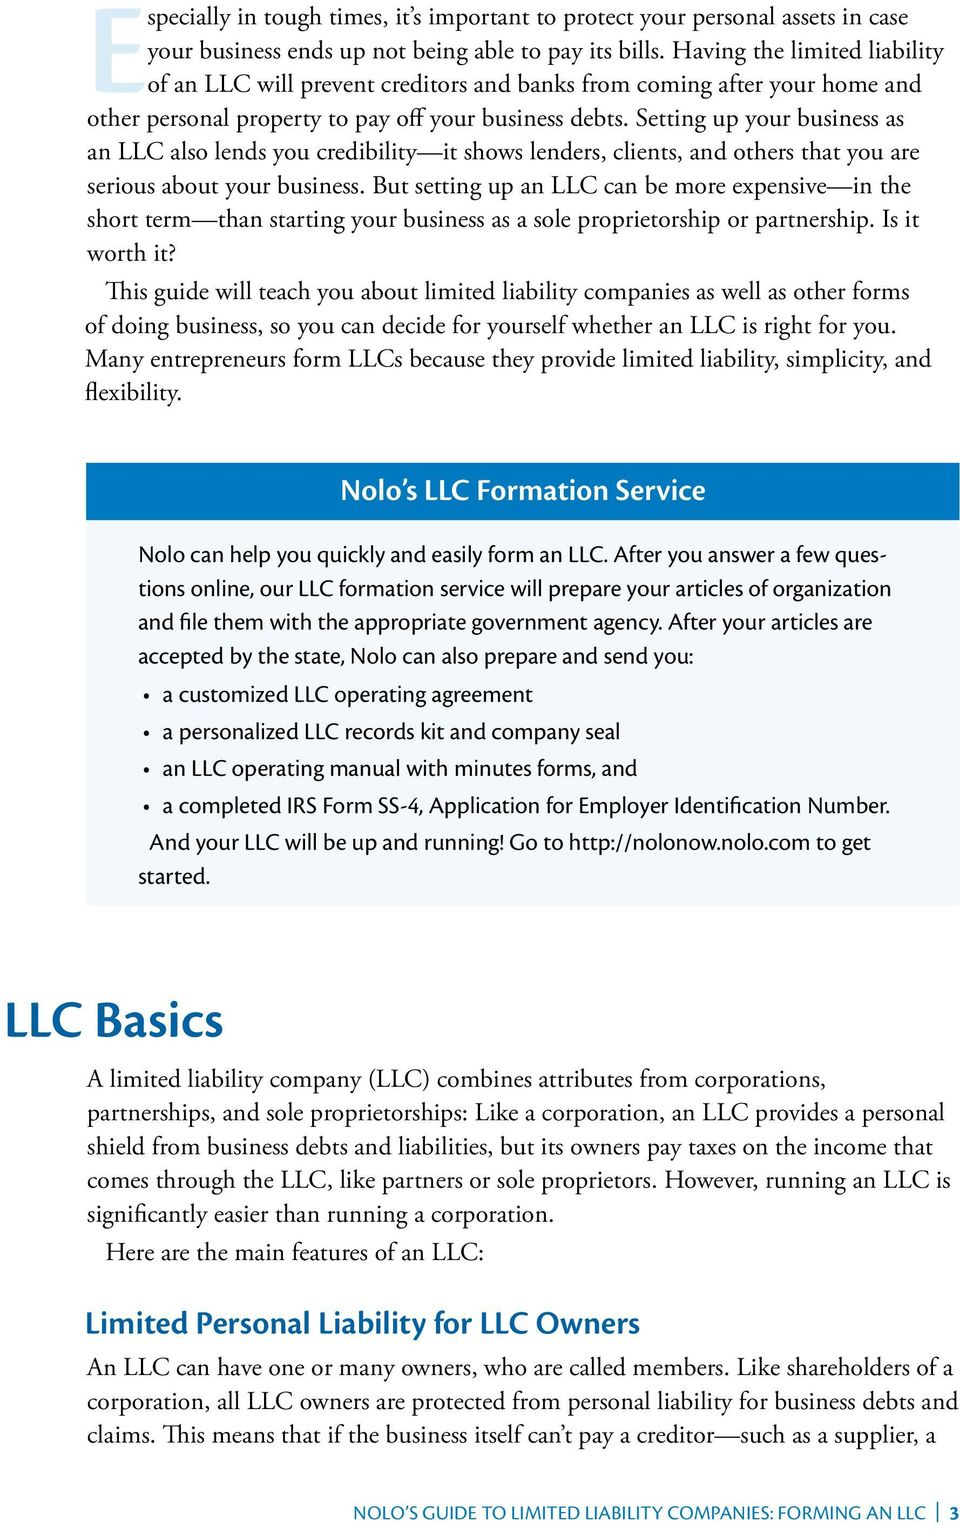 Nolo Nolo S Guide To Limited Liability Companies Forming An Llc Pdf